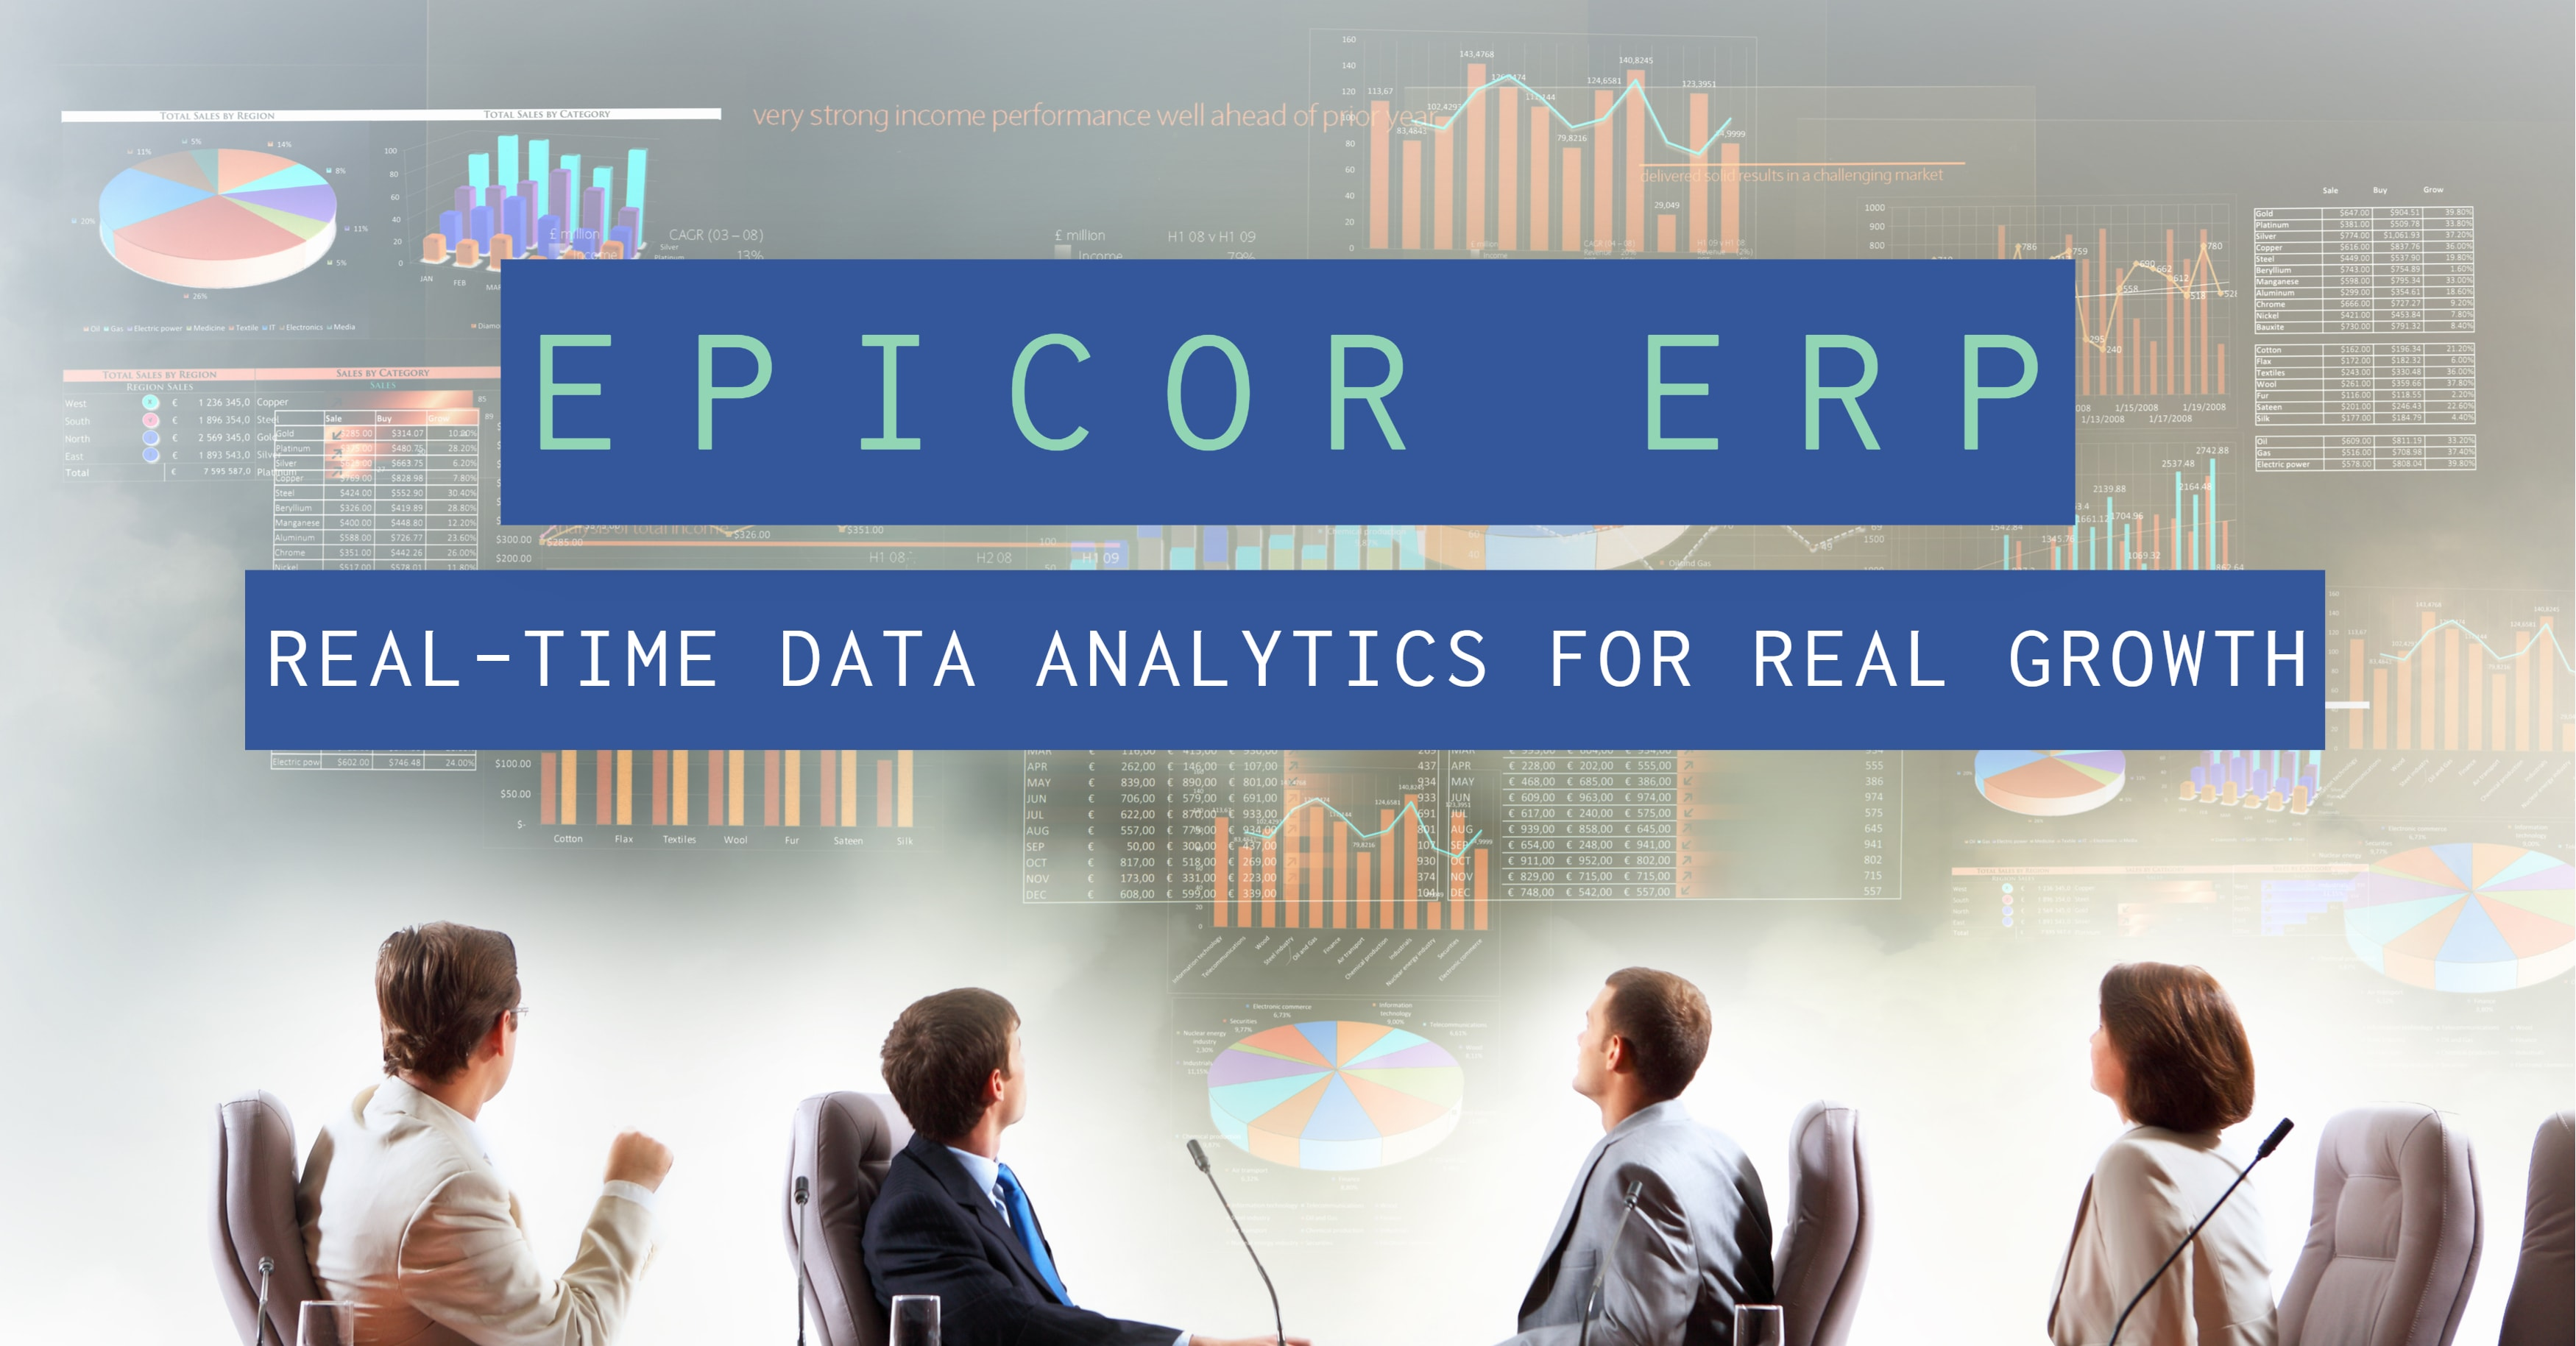 Epicor ERP: Real-Time Data Analytics for Real Growth